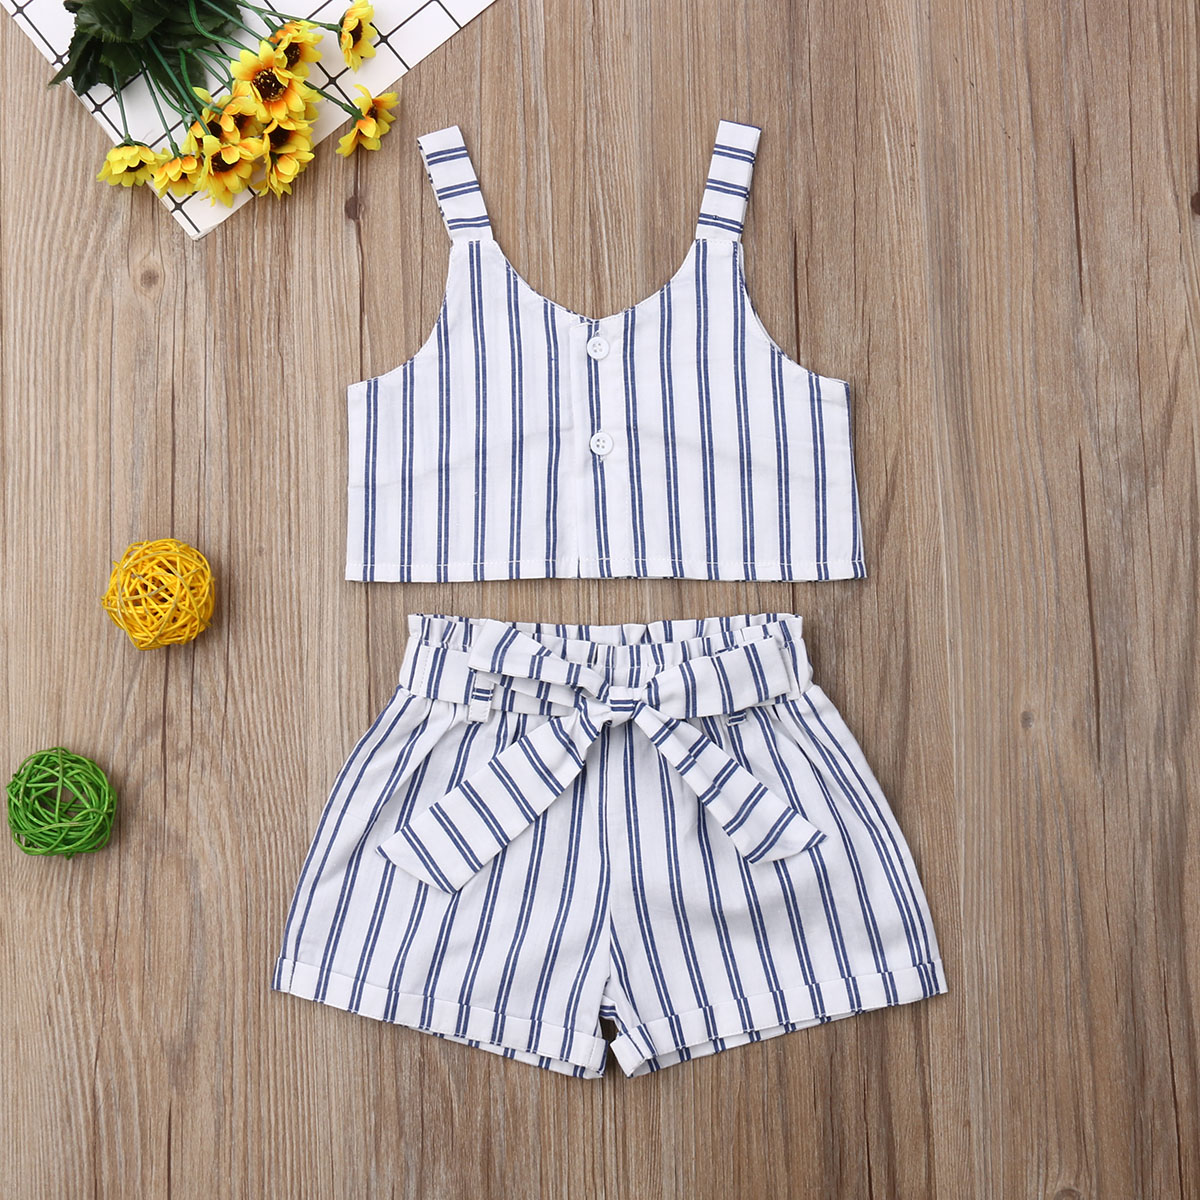 White Stripes Clothes 2Pcs Set Toddler Baby Girls Kids T shirt Vest Tops Short Pant Outfit for Children Summer in Clothing Sets from Mother Kids